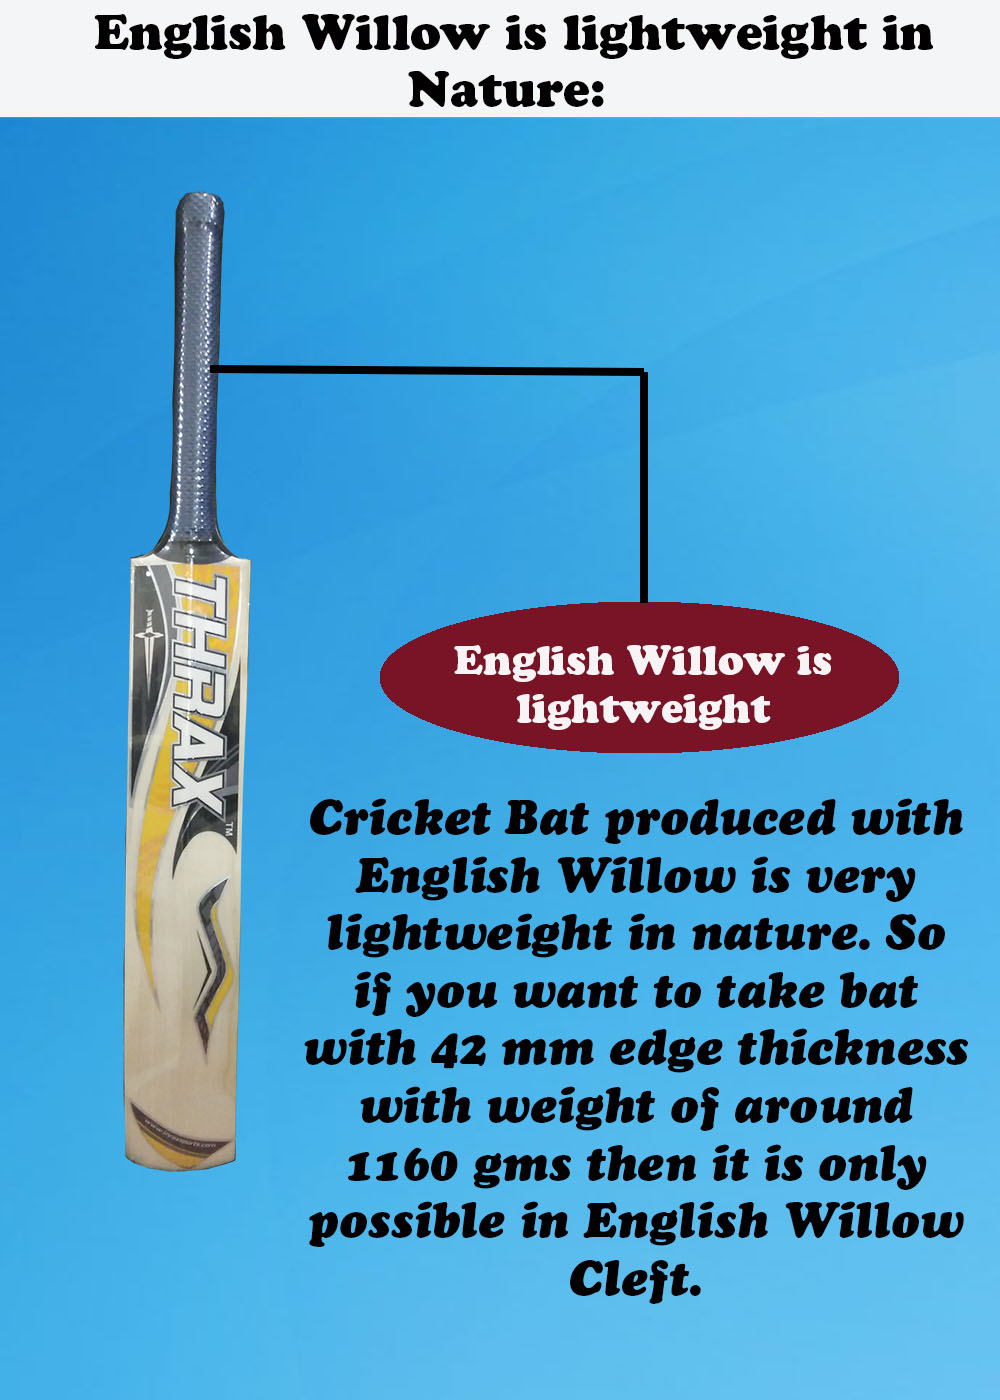 English Willow is lightweight in Nature